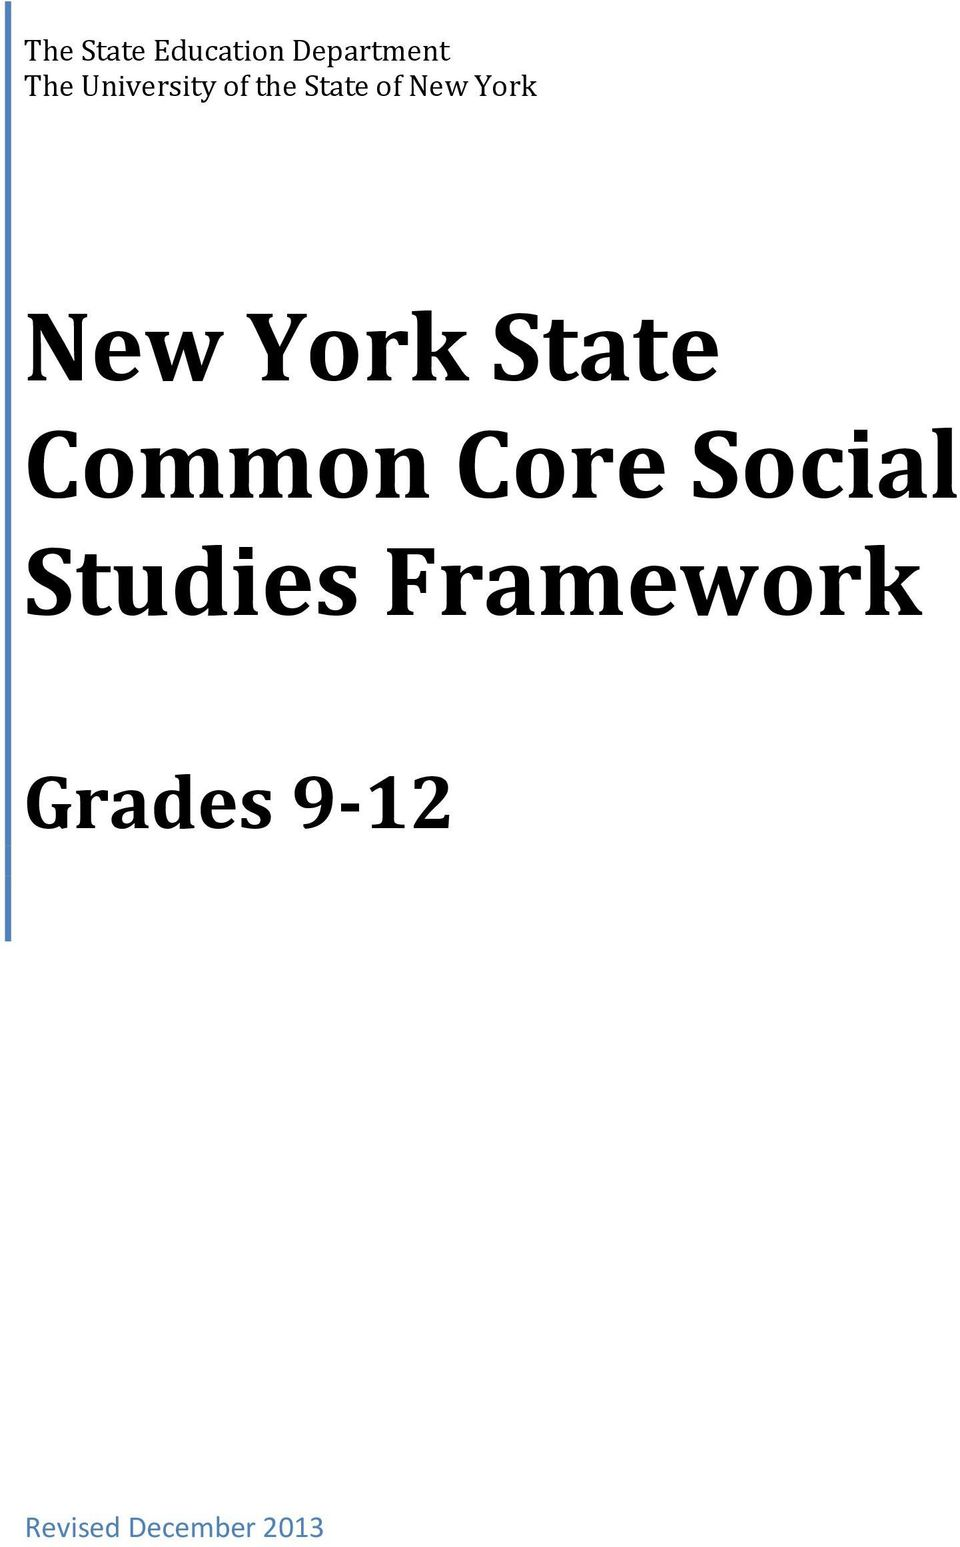 New York State Common Core Social